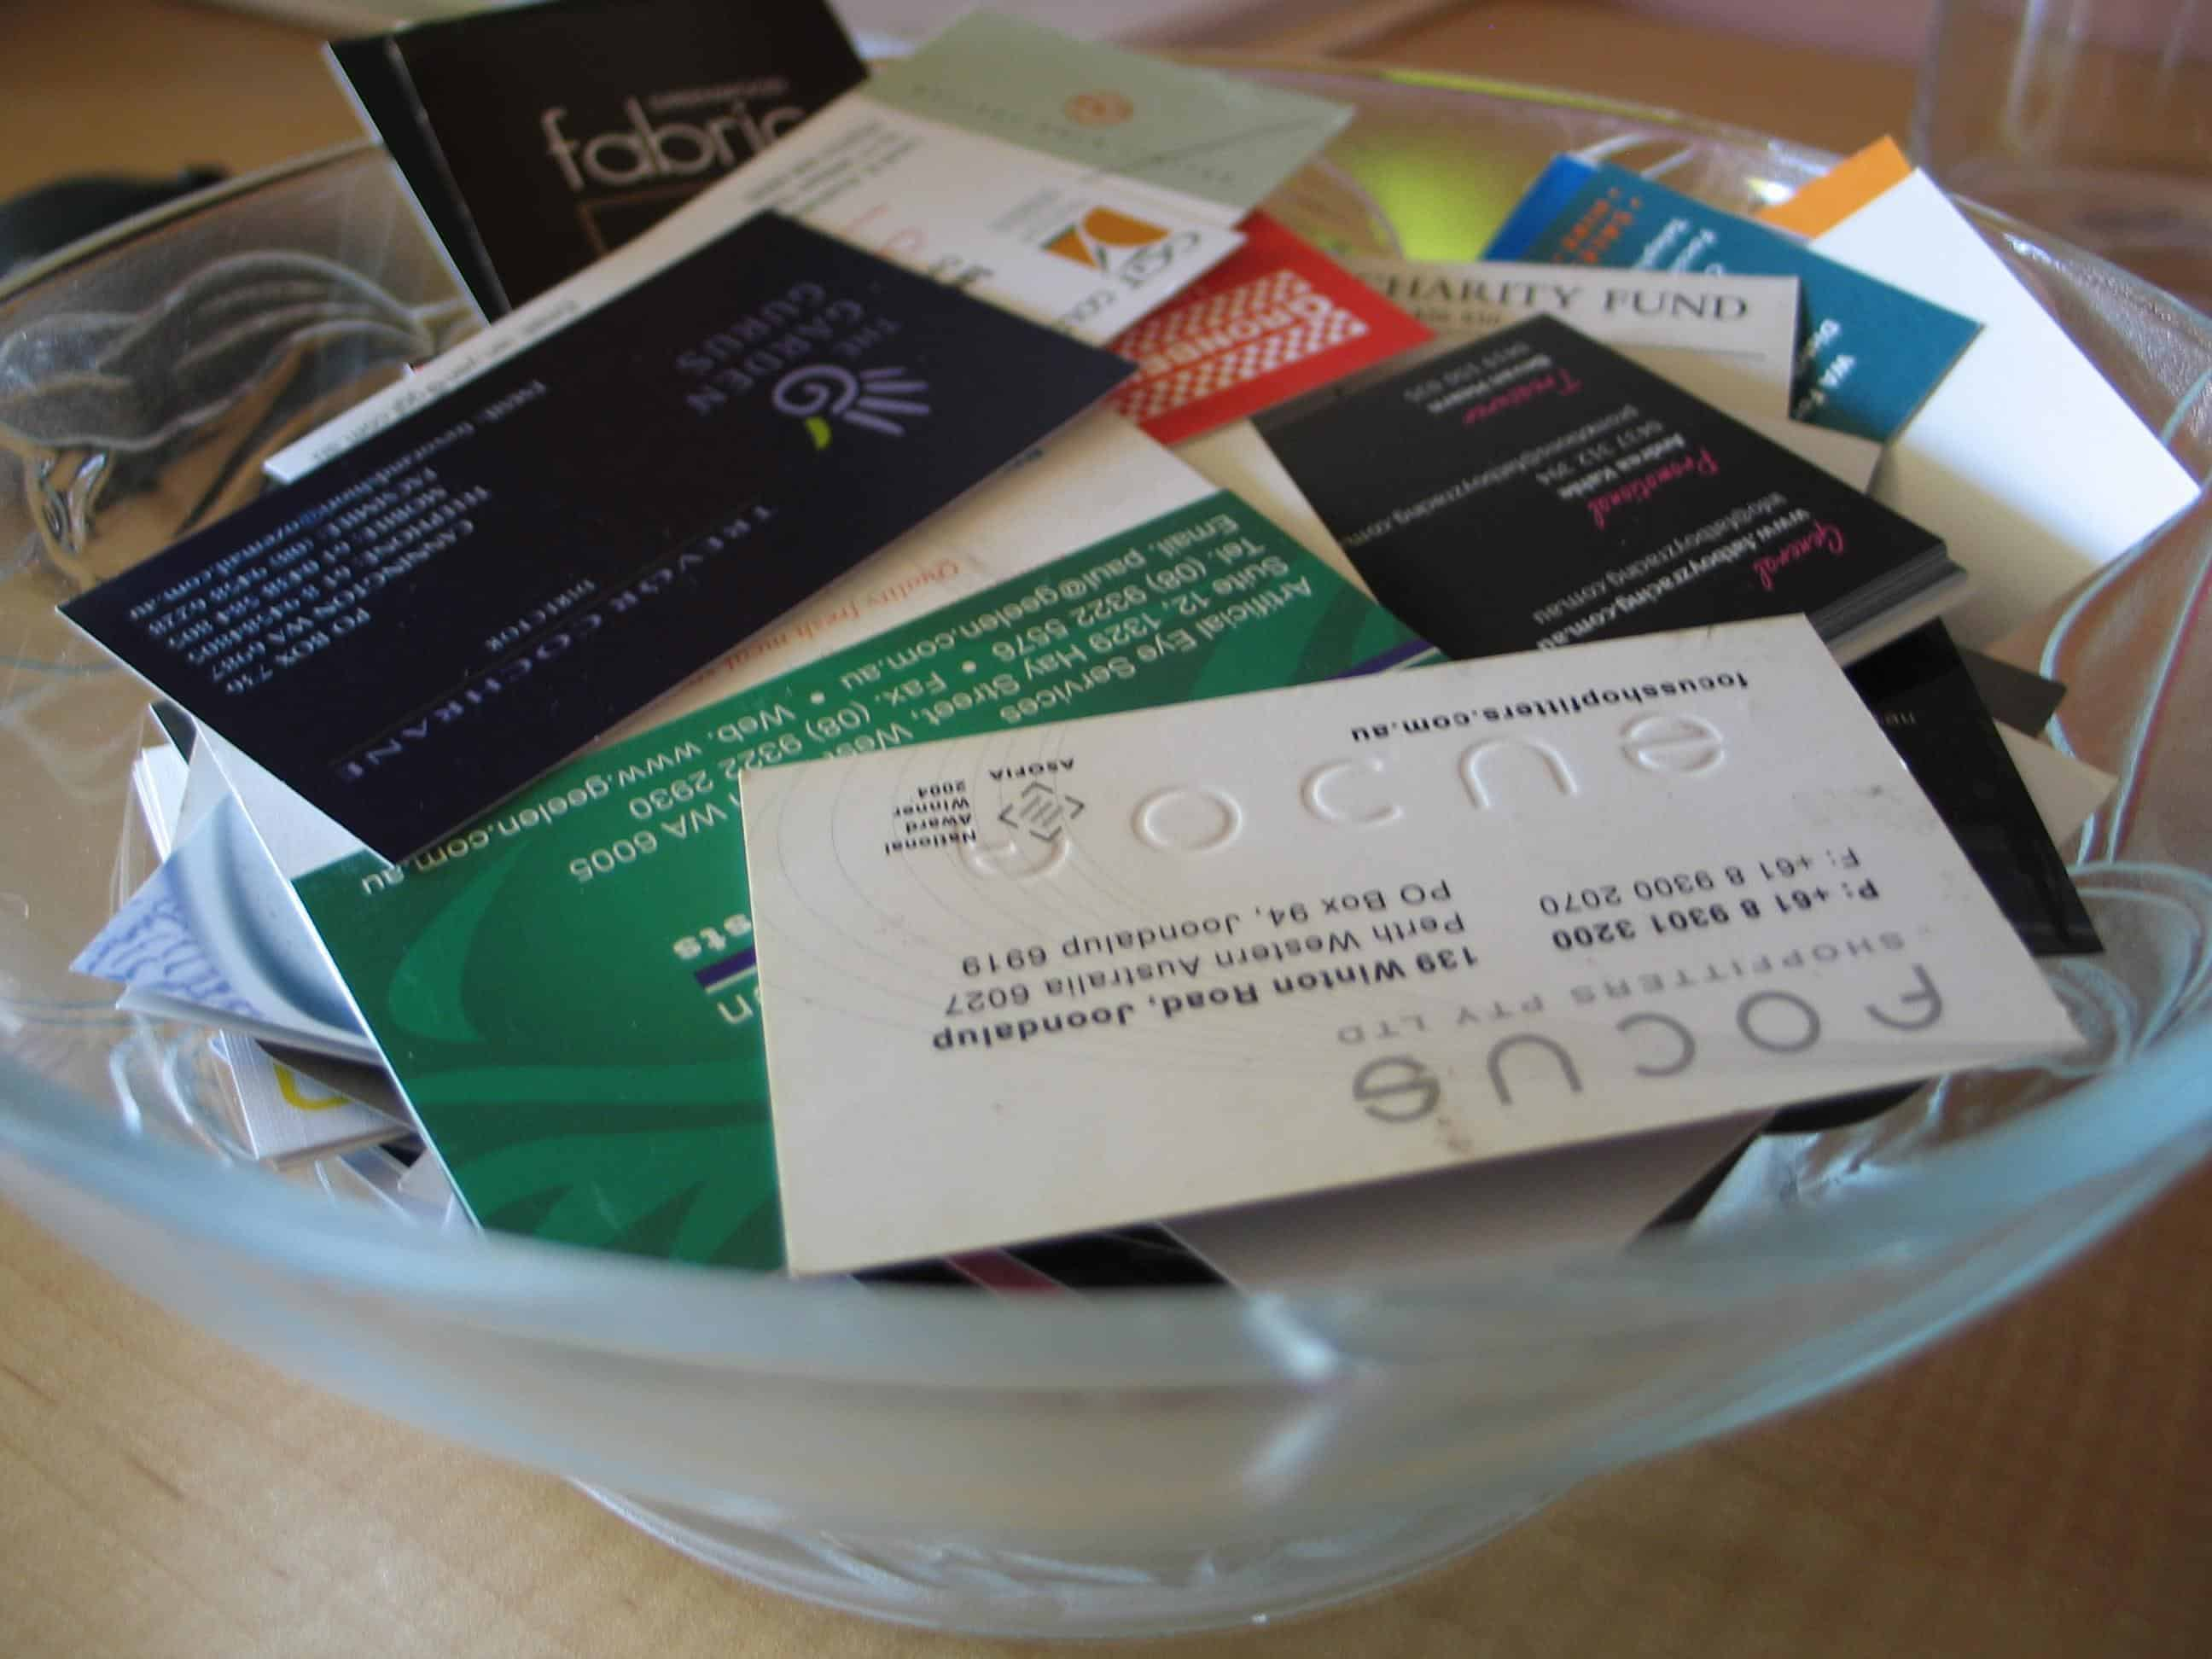 10 Places to Leave or Give Out Your Business Cards